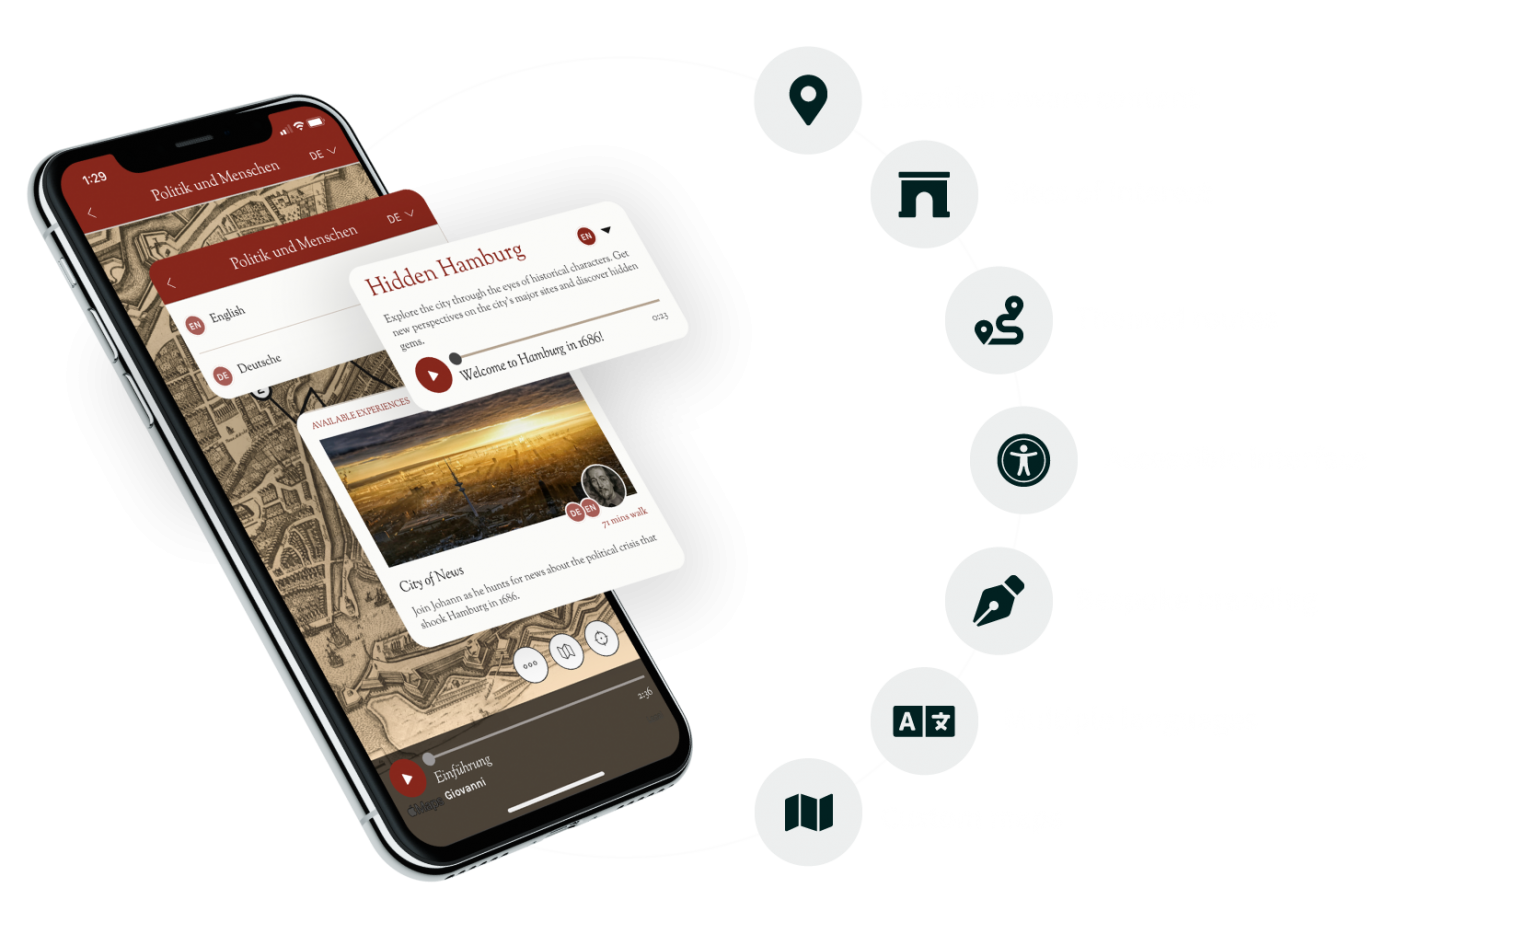 Screenshot of the Hidden Cities app, showing the key features: Location-aware content, sites of interest, themed routes, accessible interface, bespoke branding, multiple languages, custom maps.